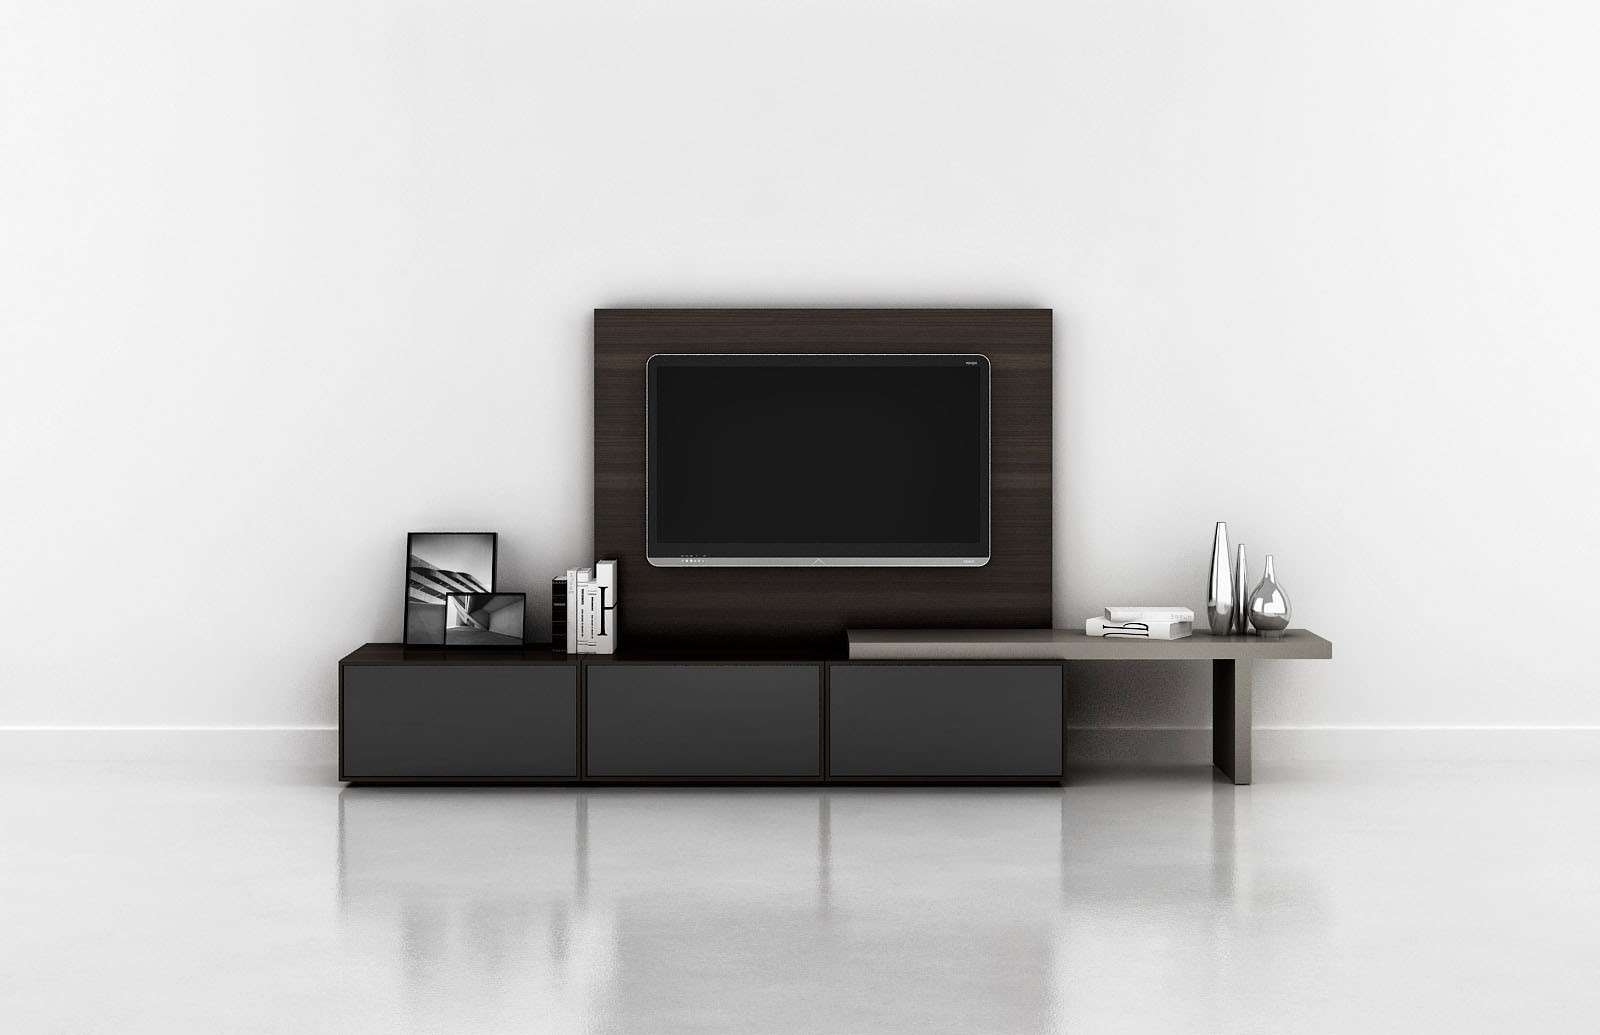 Bedroom. Stylish Tv Stand Designs For Contemporary Bedroom (View 3 of 20)